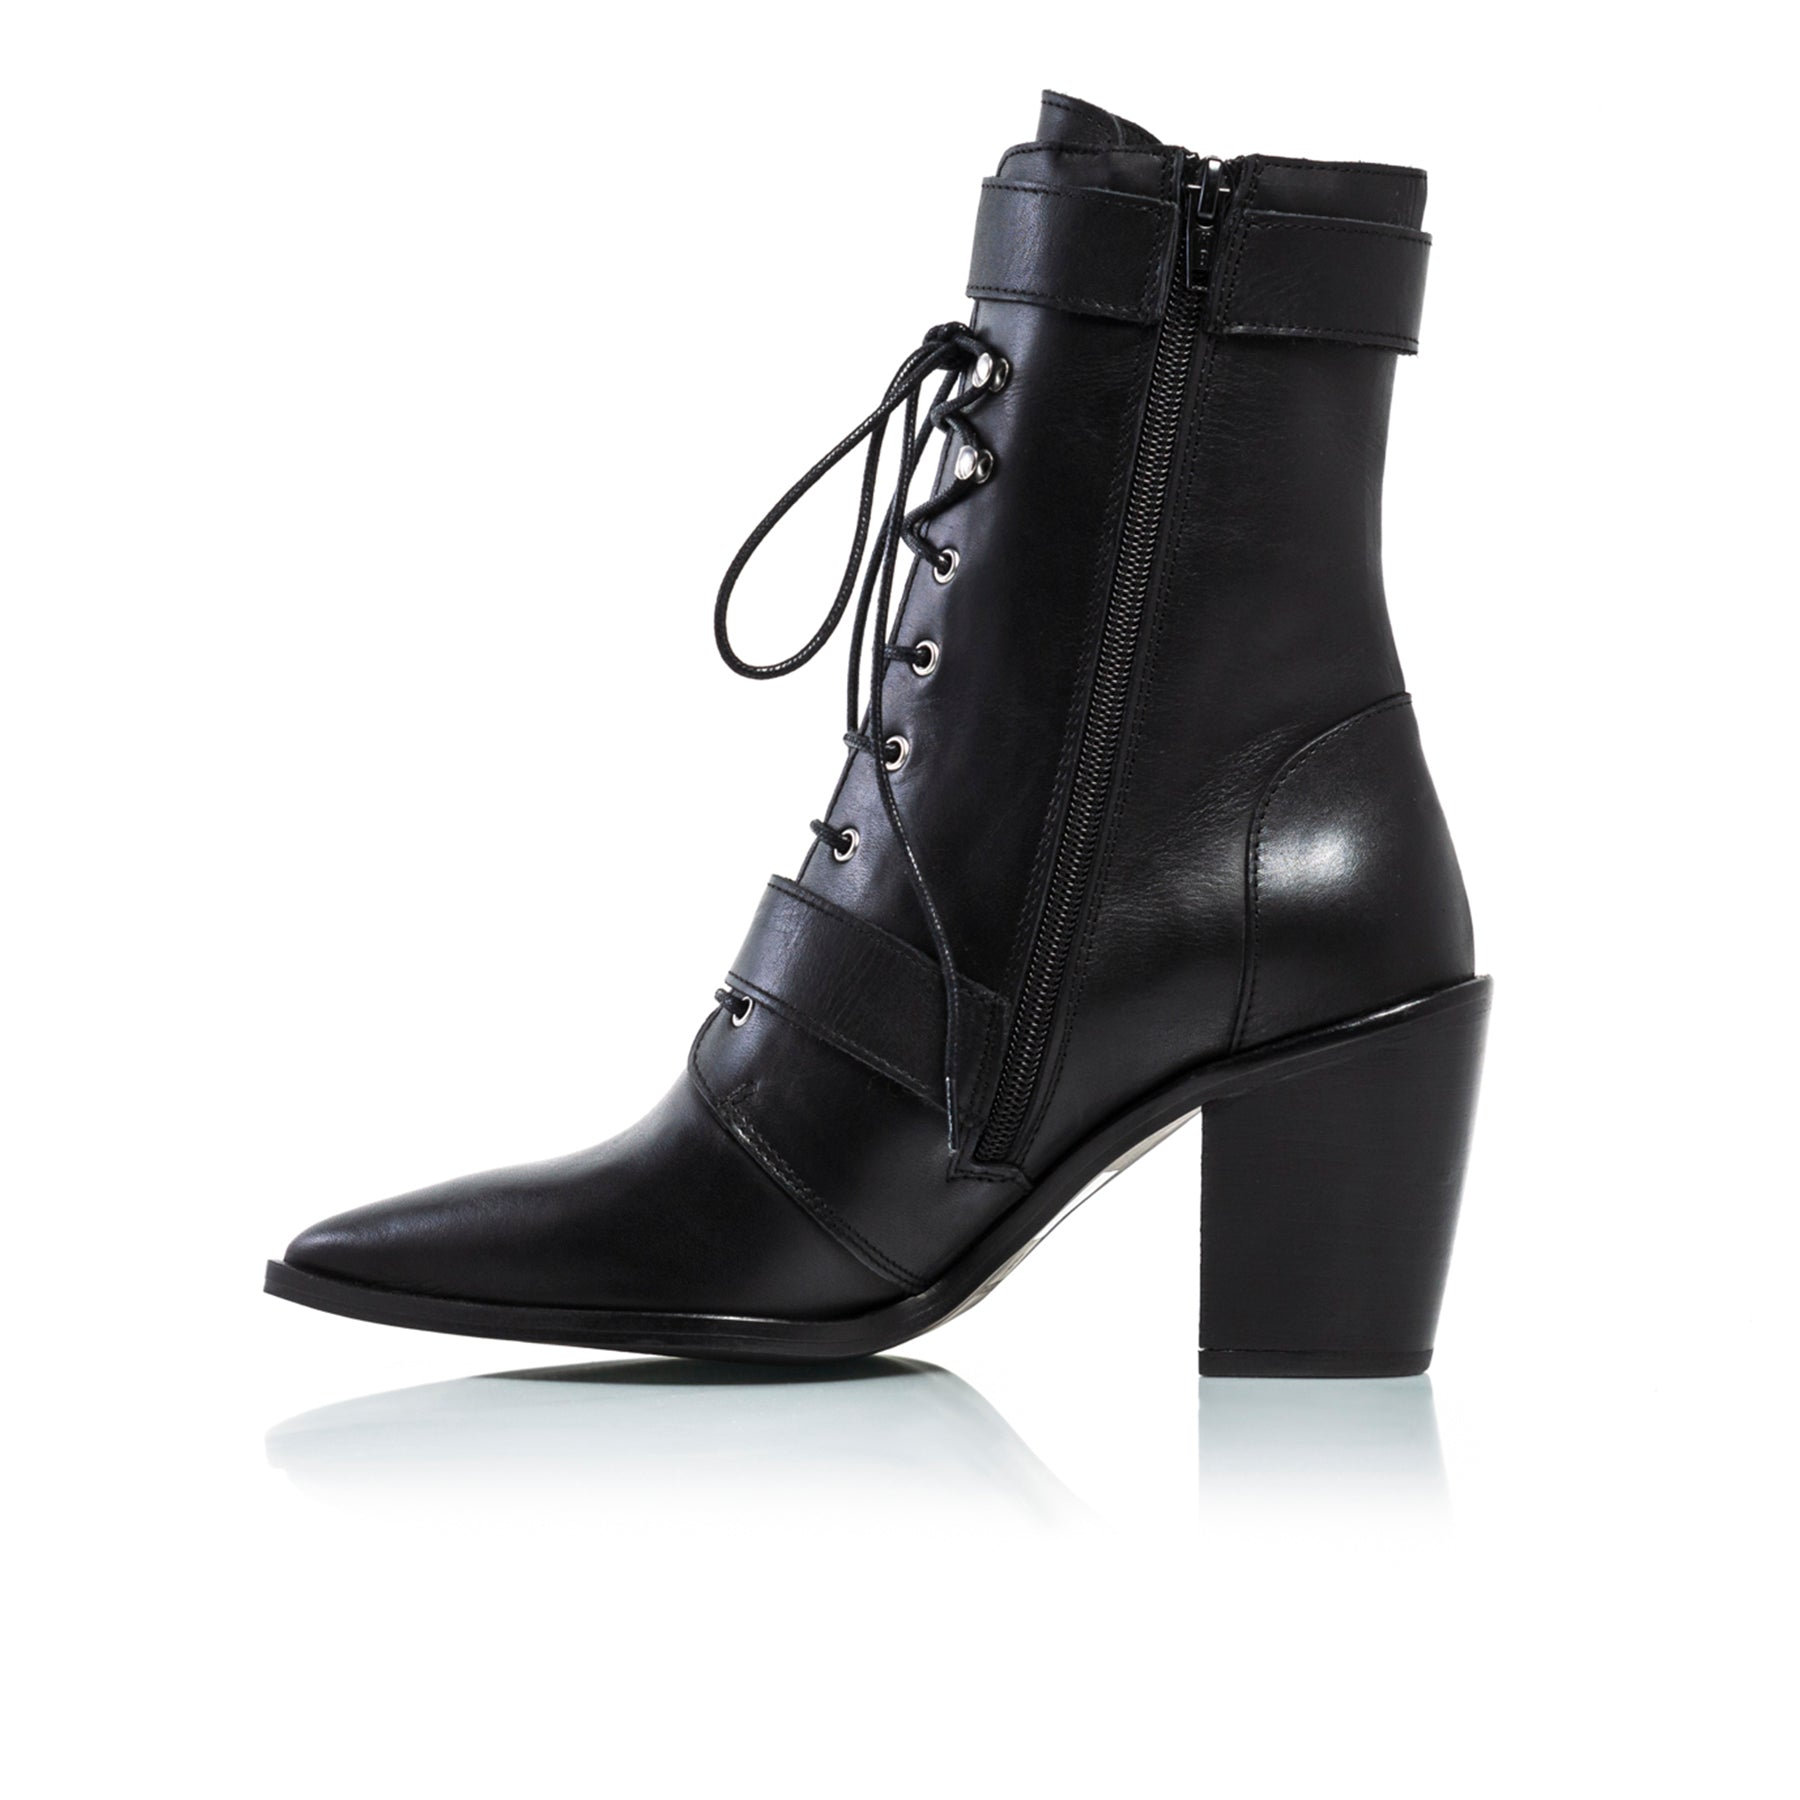 Mikaela Black Leather Ankle Boots